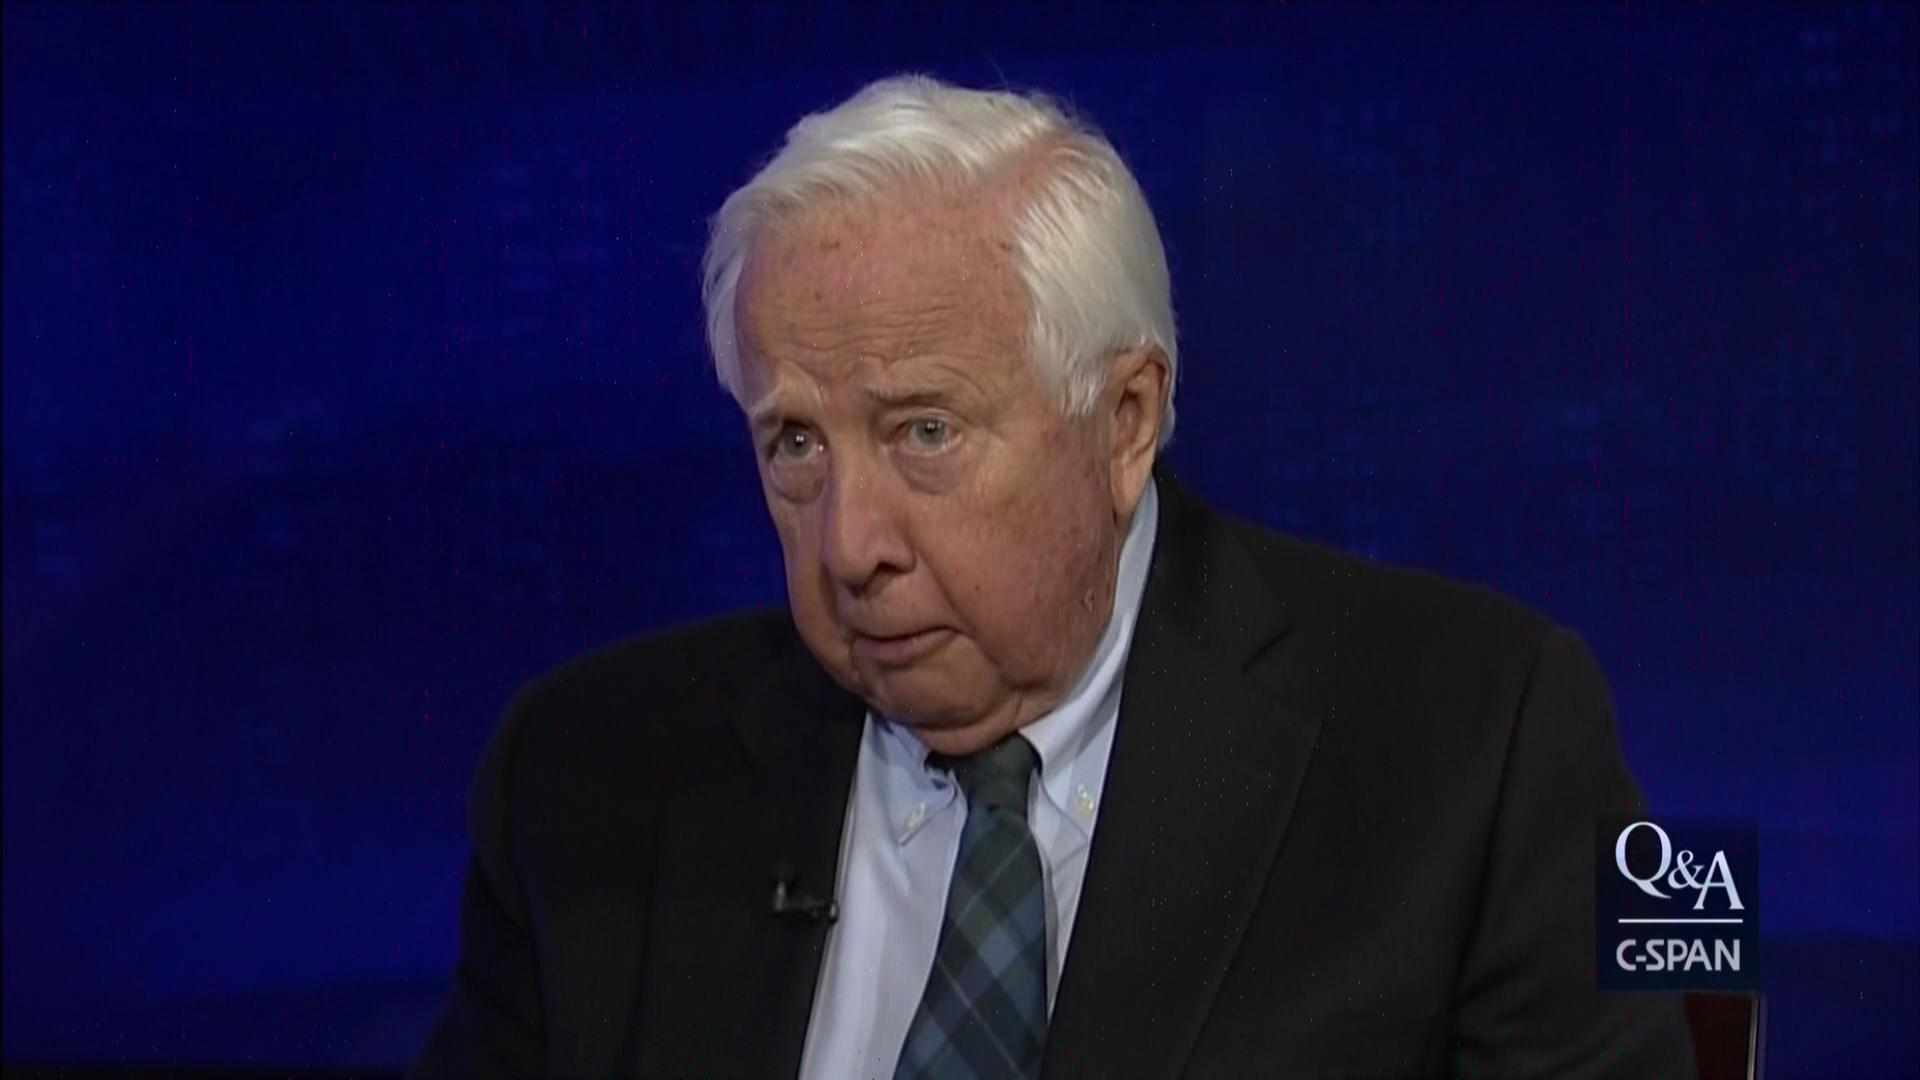 David Mccullough Discusses His New Book Project, The Pioneers